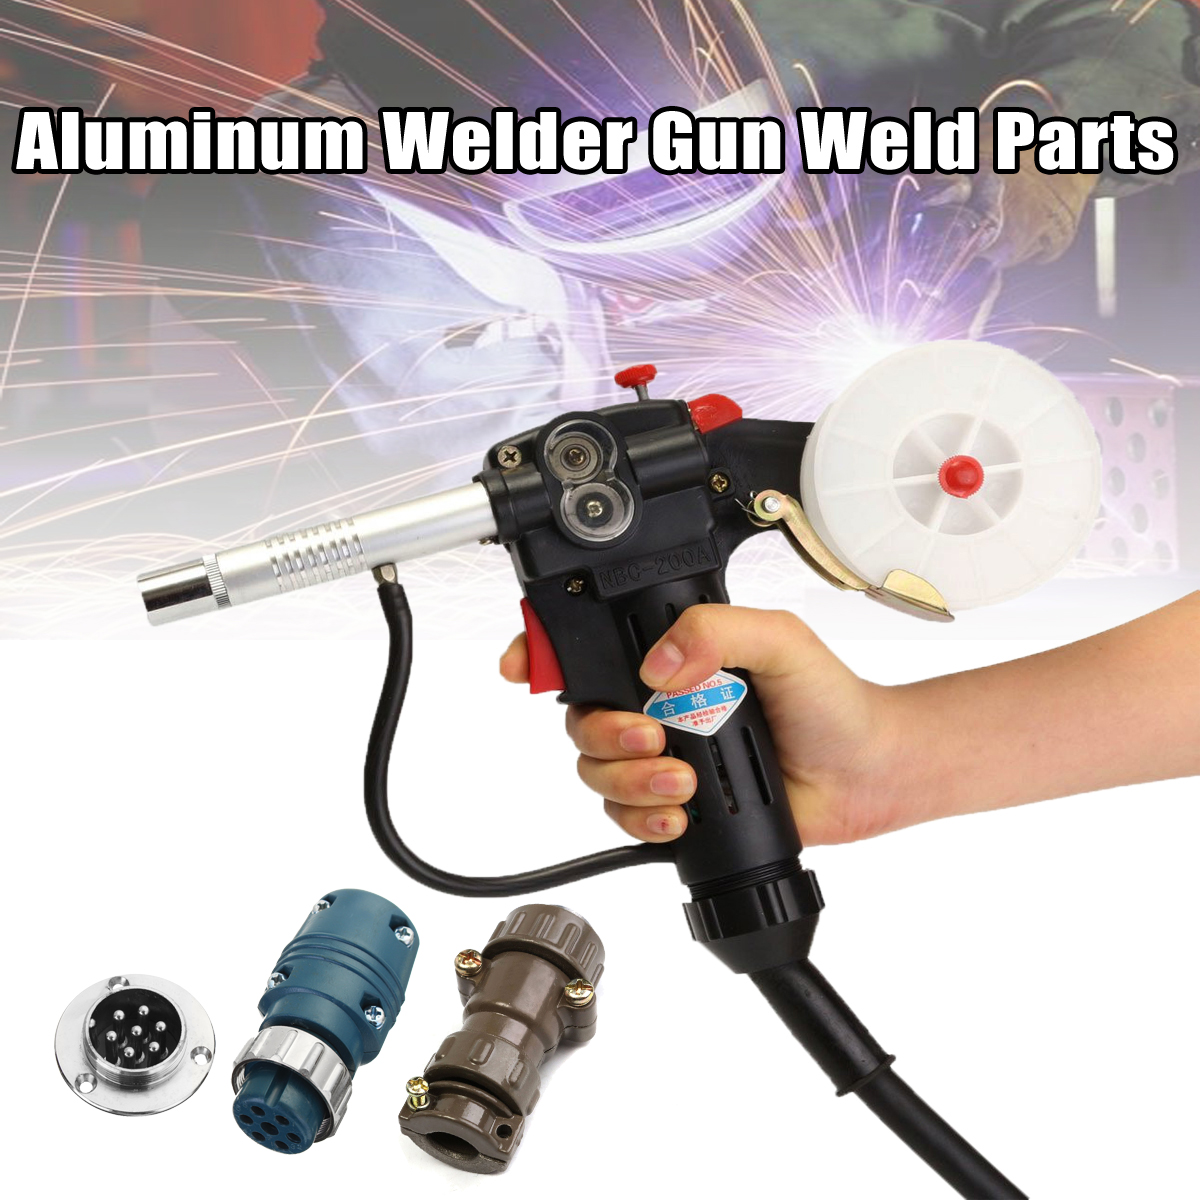 Aluminum Welders Gun Weld Parts Spool Gun Gas Shielded Welding with 7Pin Plug Push Pull Torch Welding Equipment spool gun gas shielded welding gun lead push pull aluminum torch with cable for high altitude operation